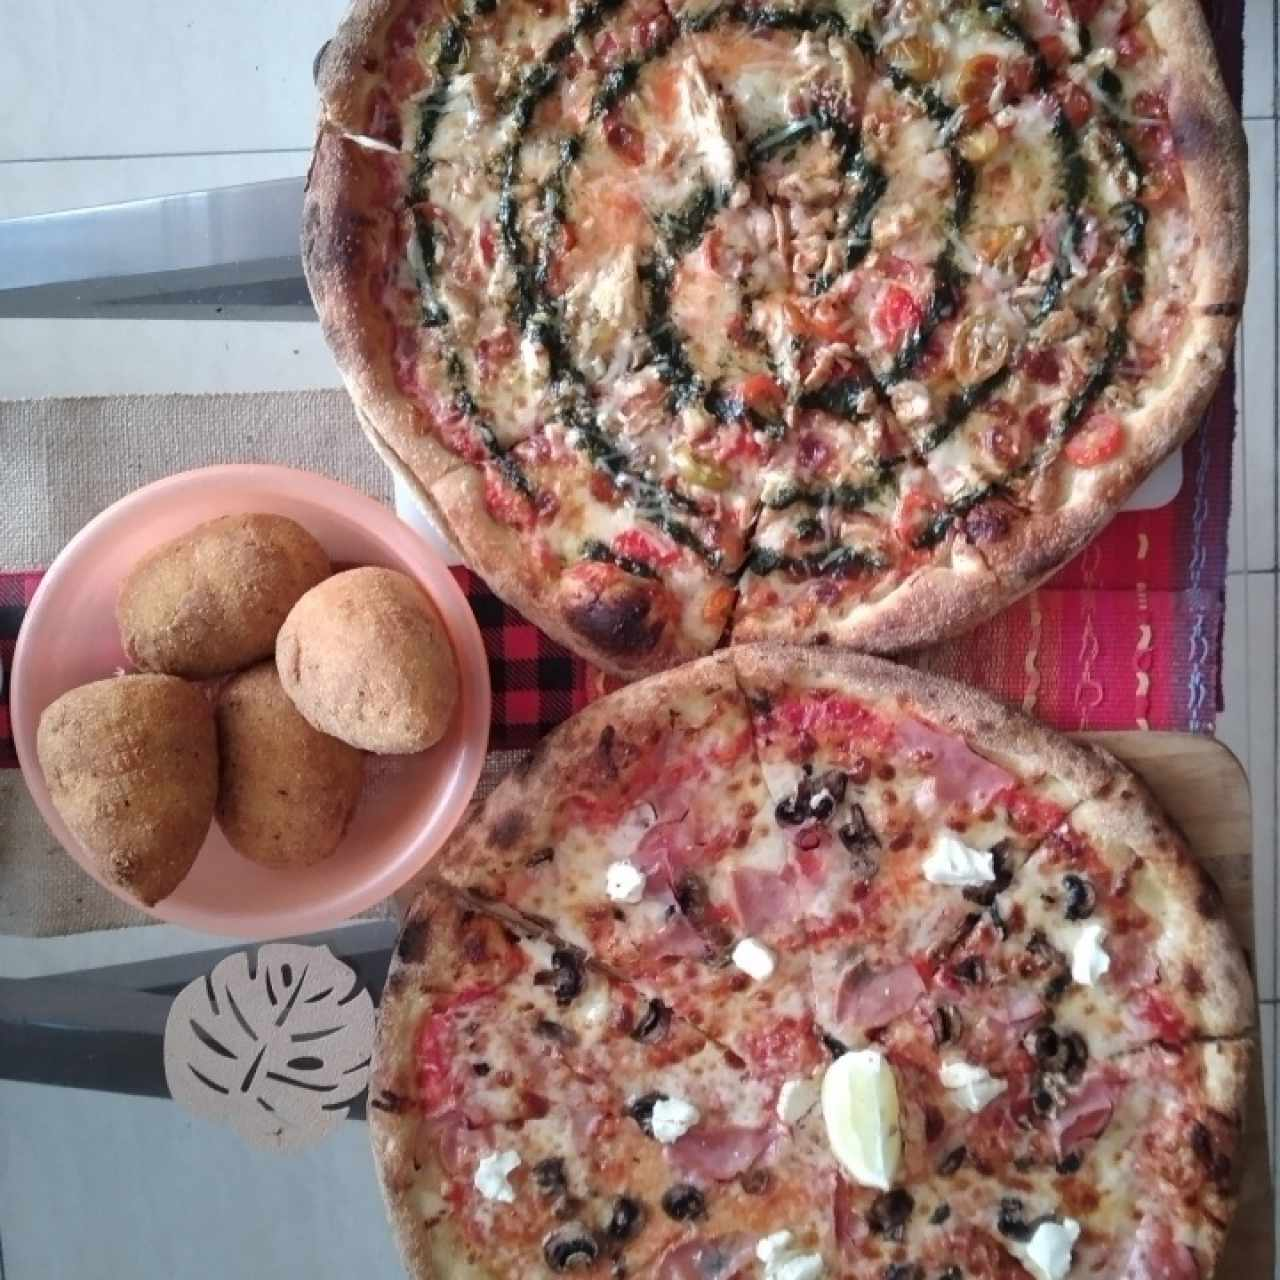 Pizza Pesto Con Pollo, Arancini y Pizza Limón